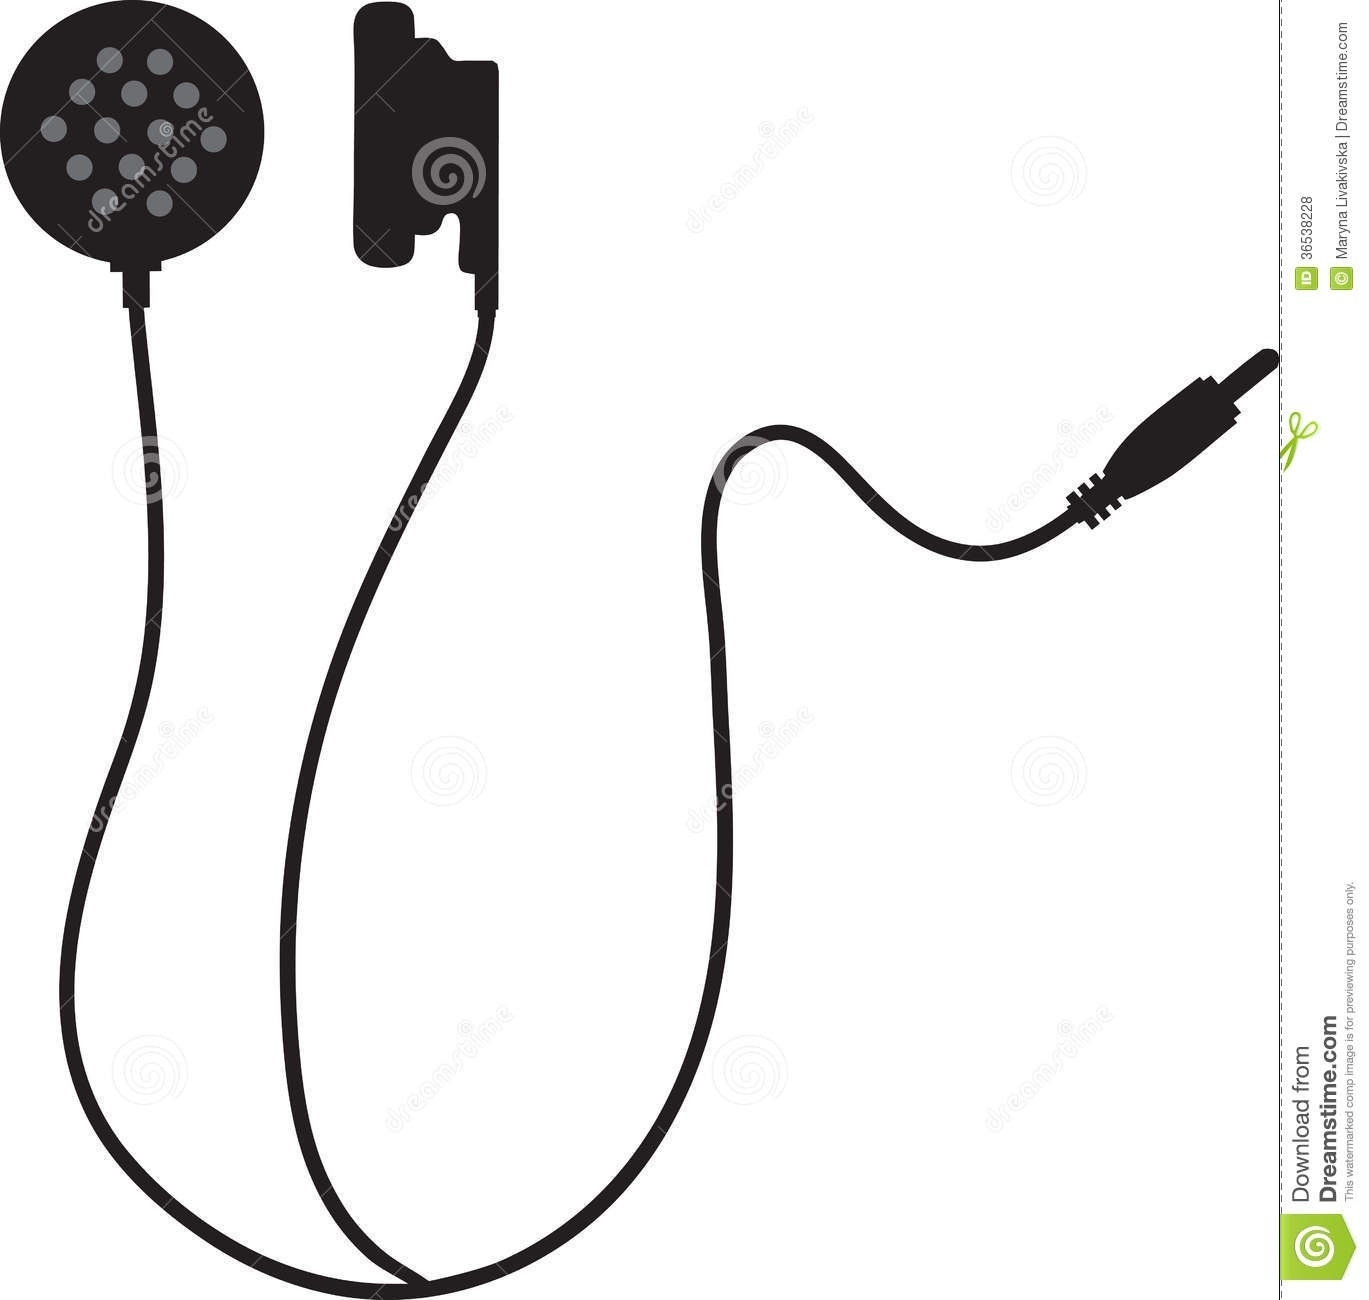 Cool of black and. Earbuds clipart